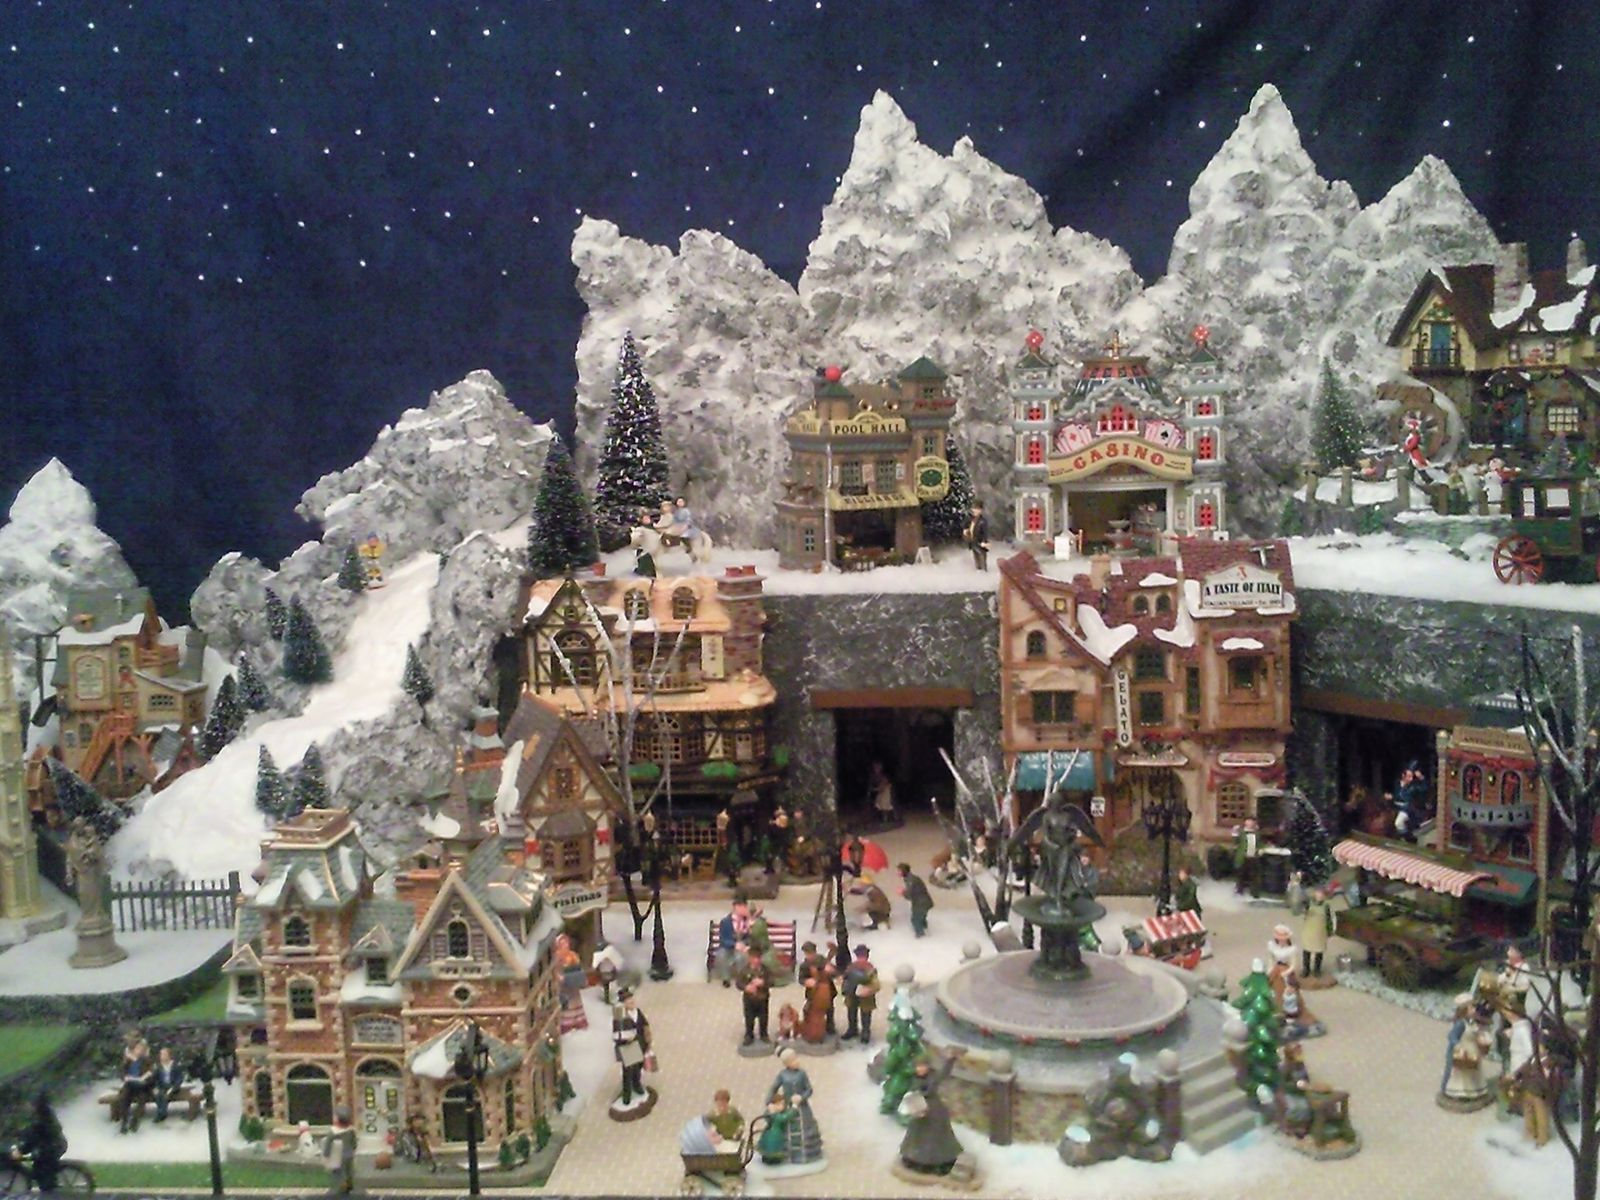 Les villages miniatures de no l de lalie lemax luville department 56 - Village de noel miniature ...